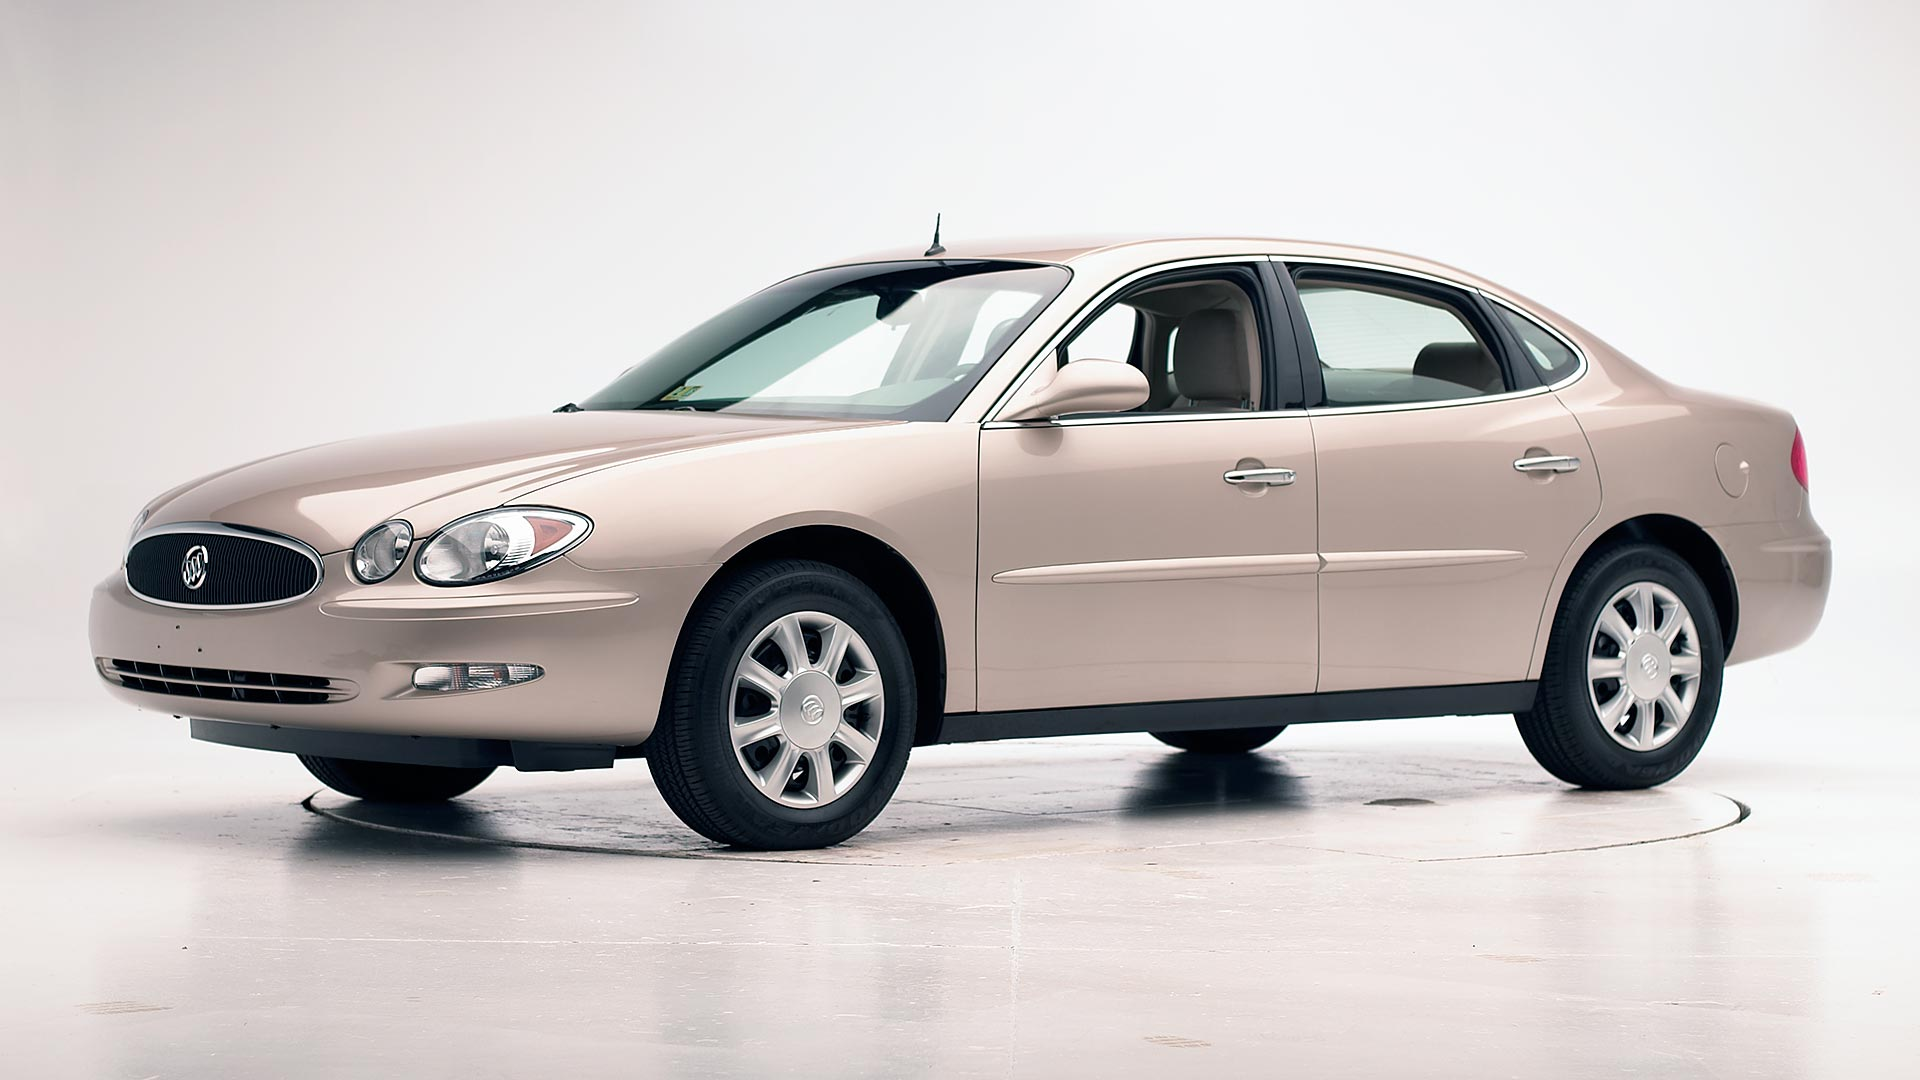 2005 Buick LaCrosse 4-door sedan